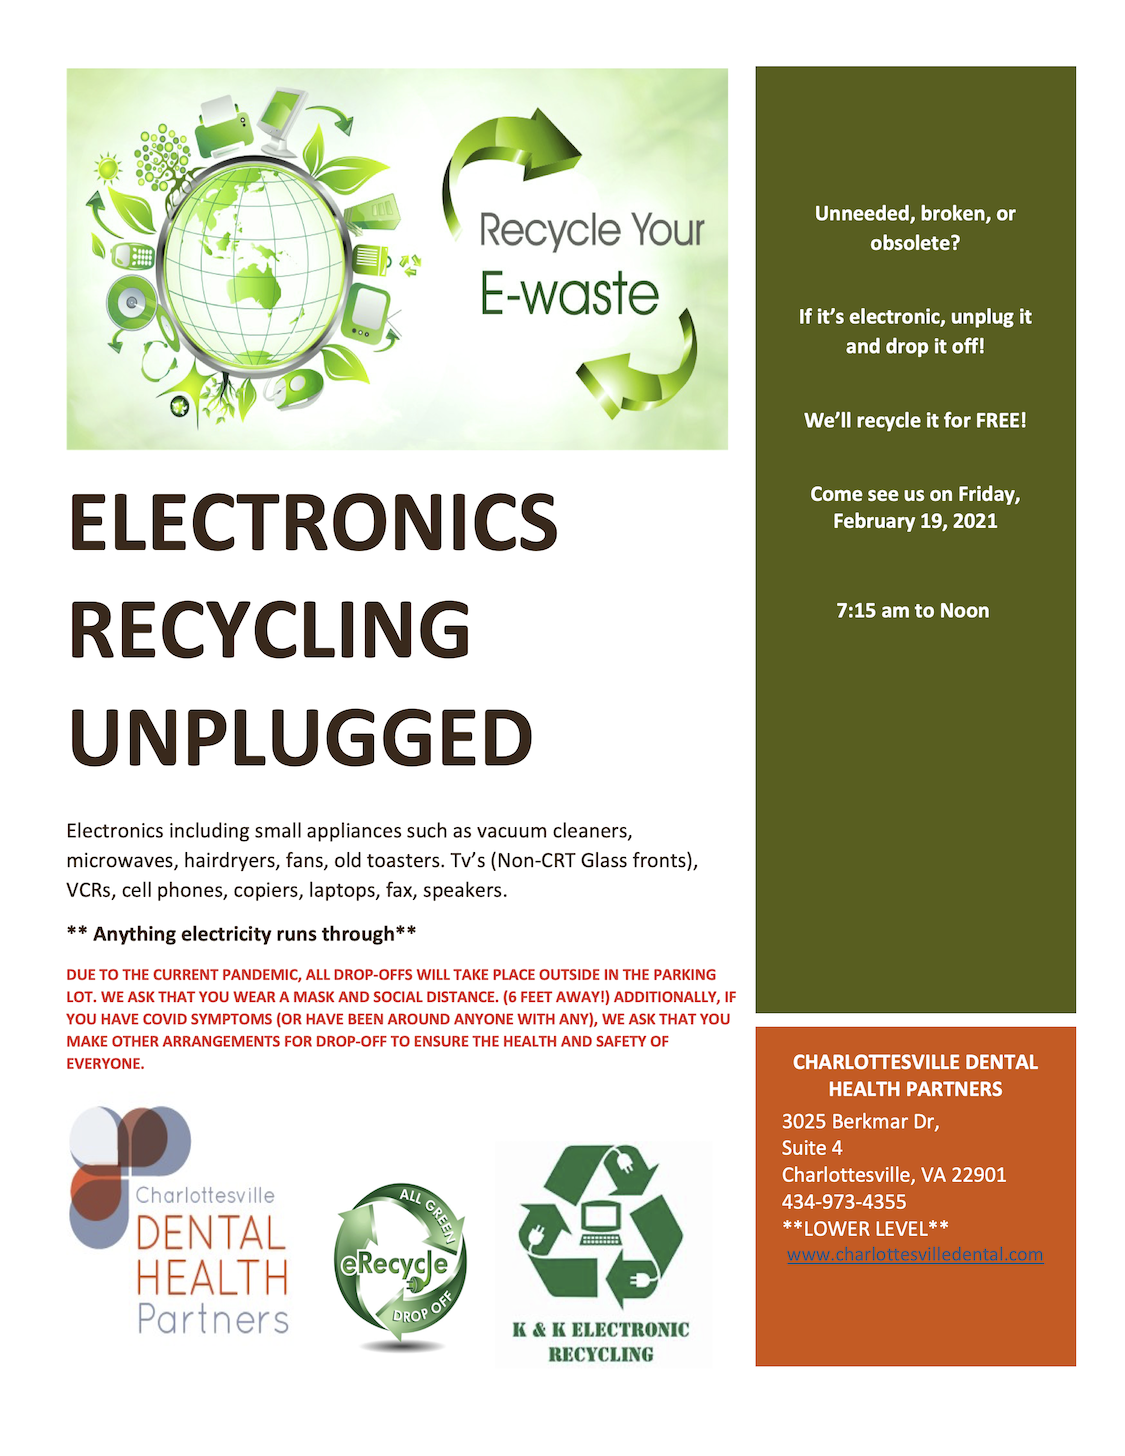 Free Electronics Recycling on Friday, February 19, 2021 from 7:15 to Noon.